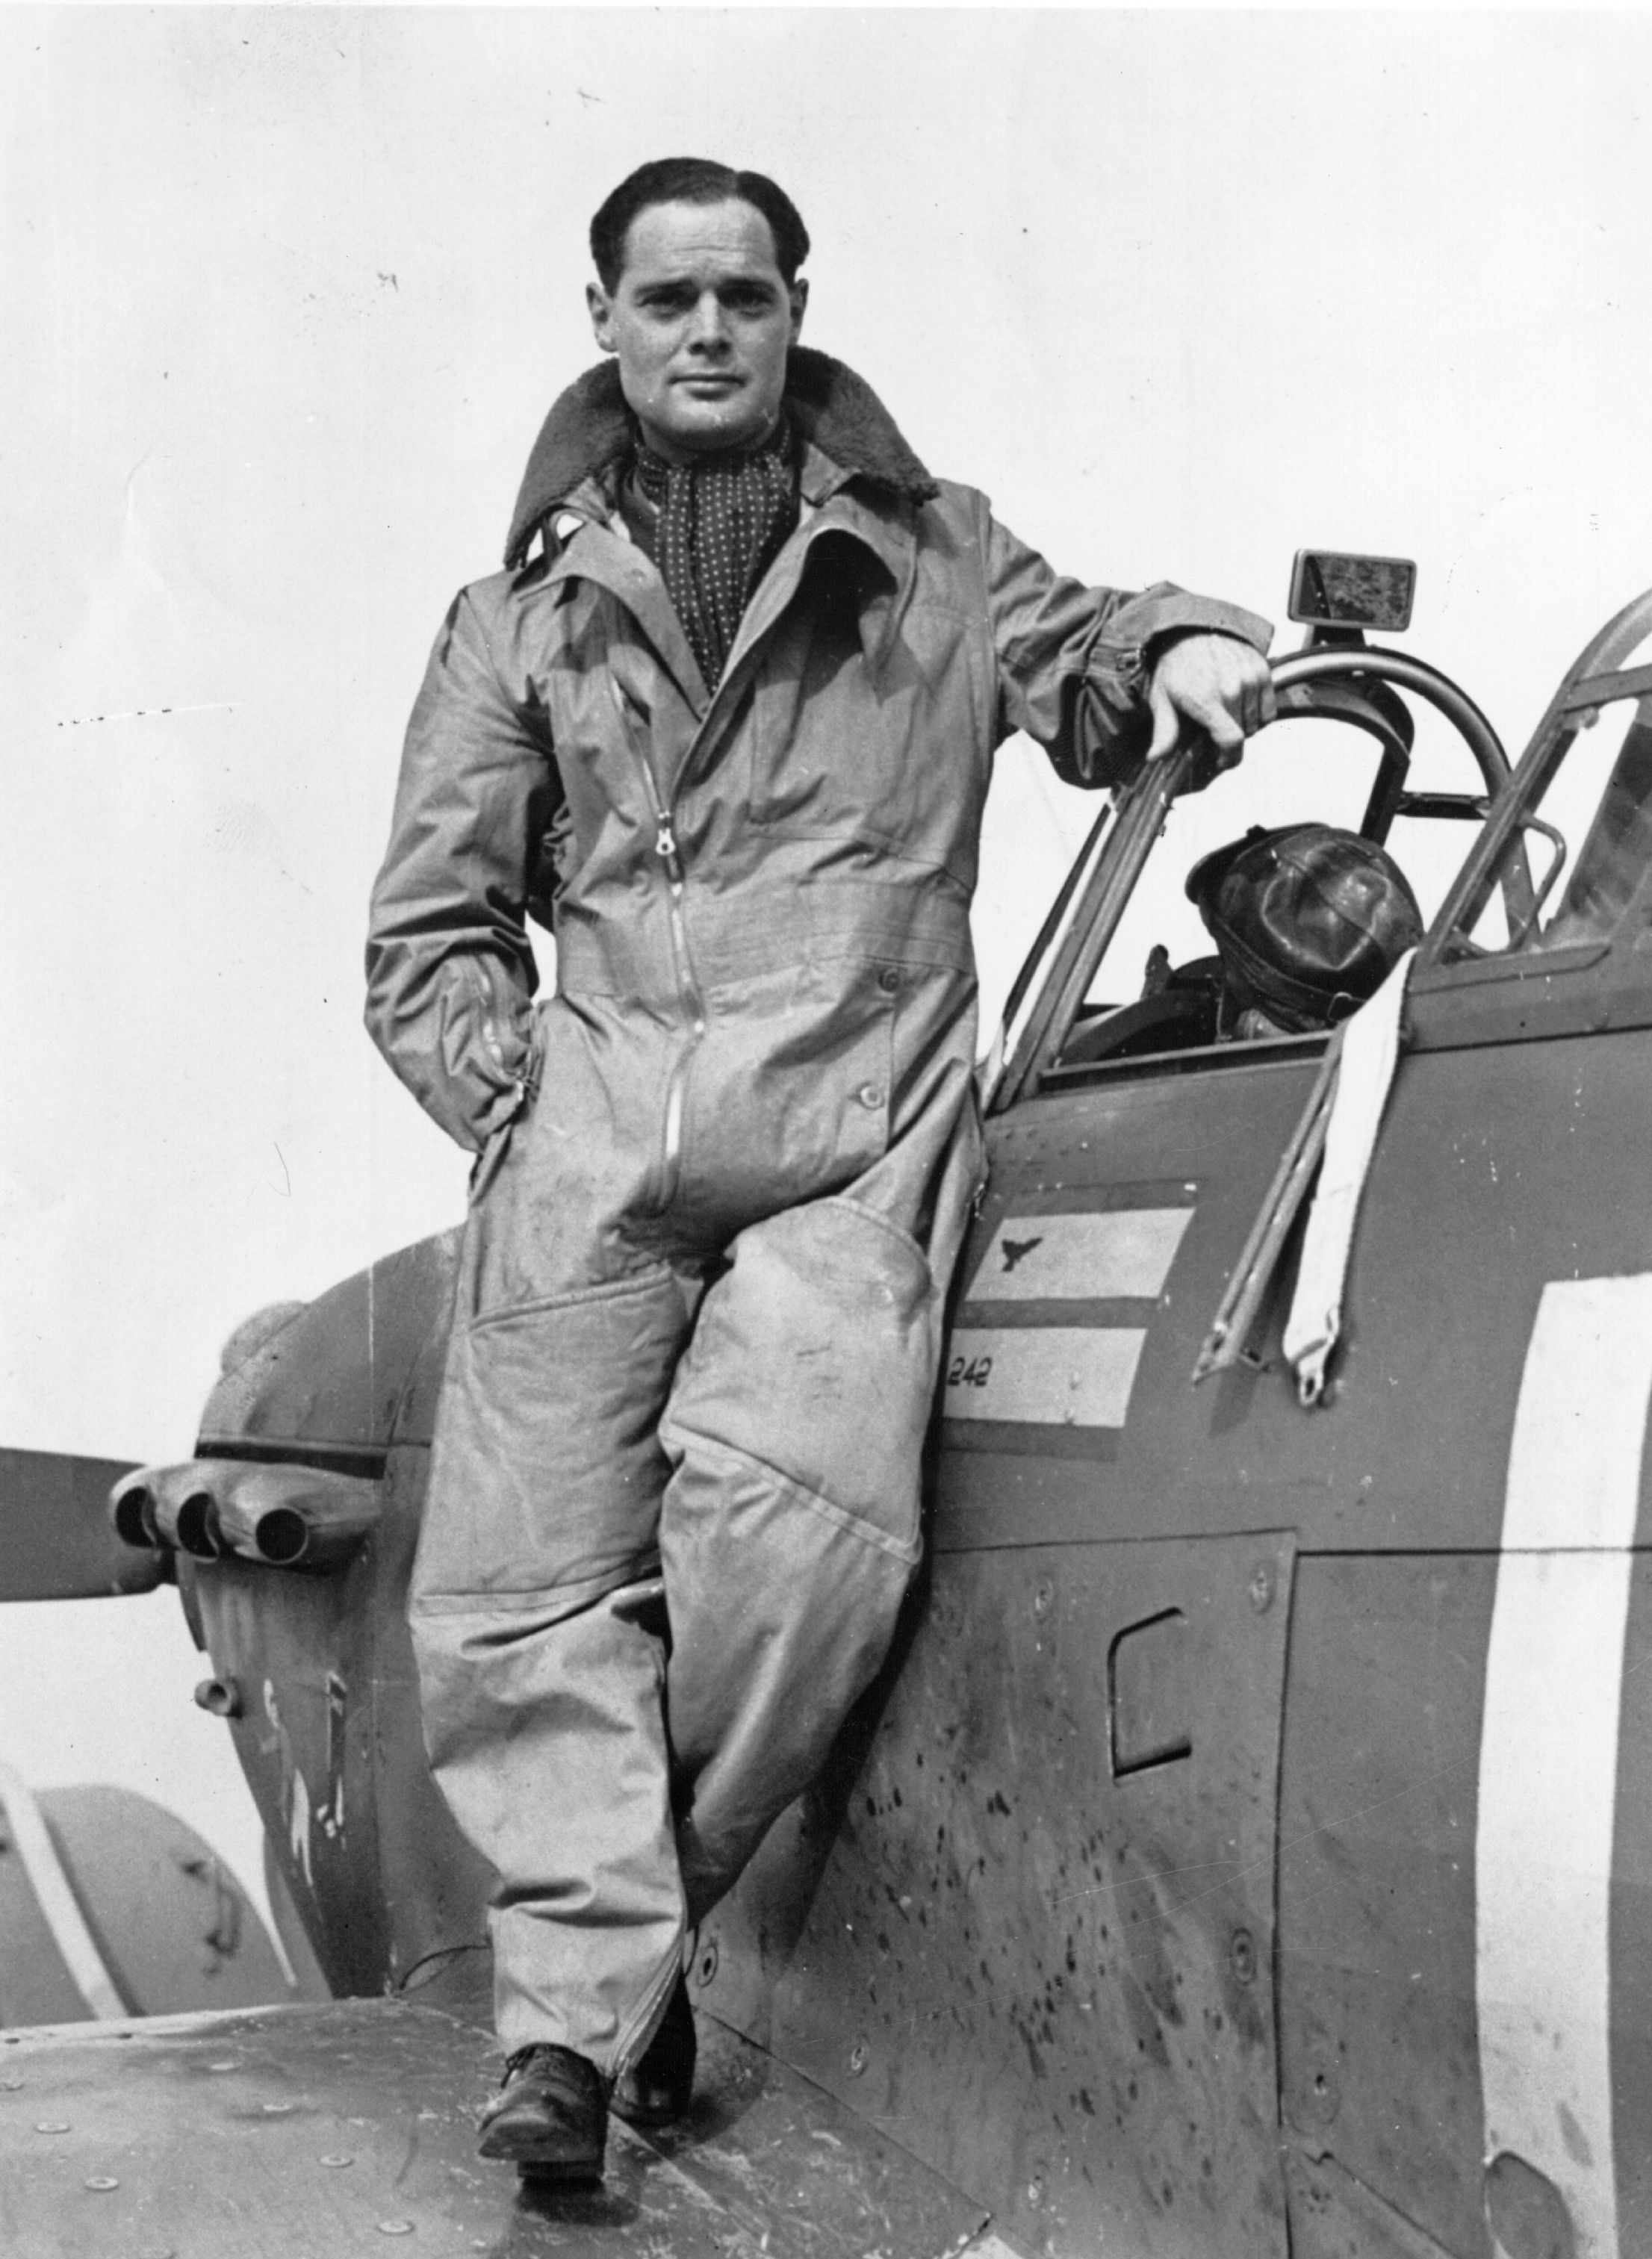 """Douglas Bader. """"It wouldn't be particularly good news to hear: 'Welcome onboard this Ryanair flight to Malaga. I'm Captain Bader,"""" says Jonathan Agnew. (Photo by Evening Standard/Getty Images)"""